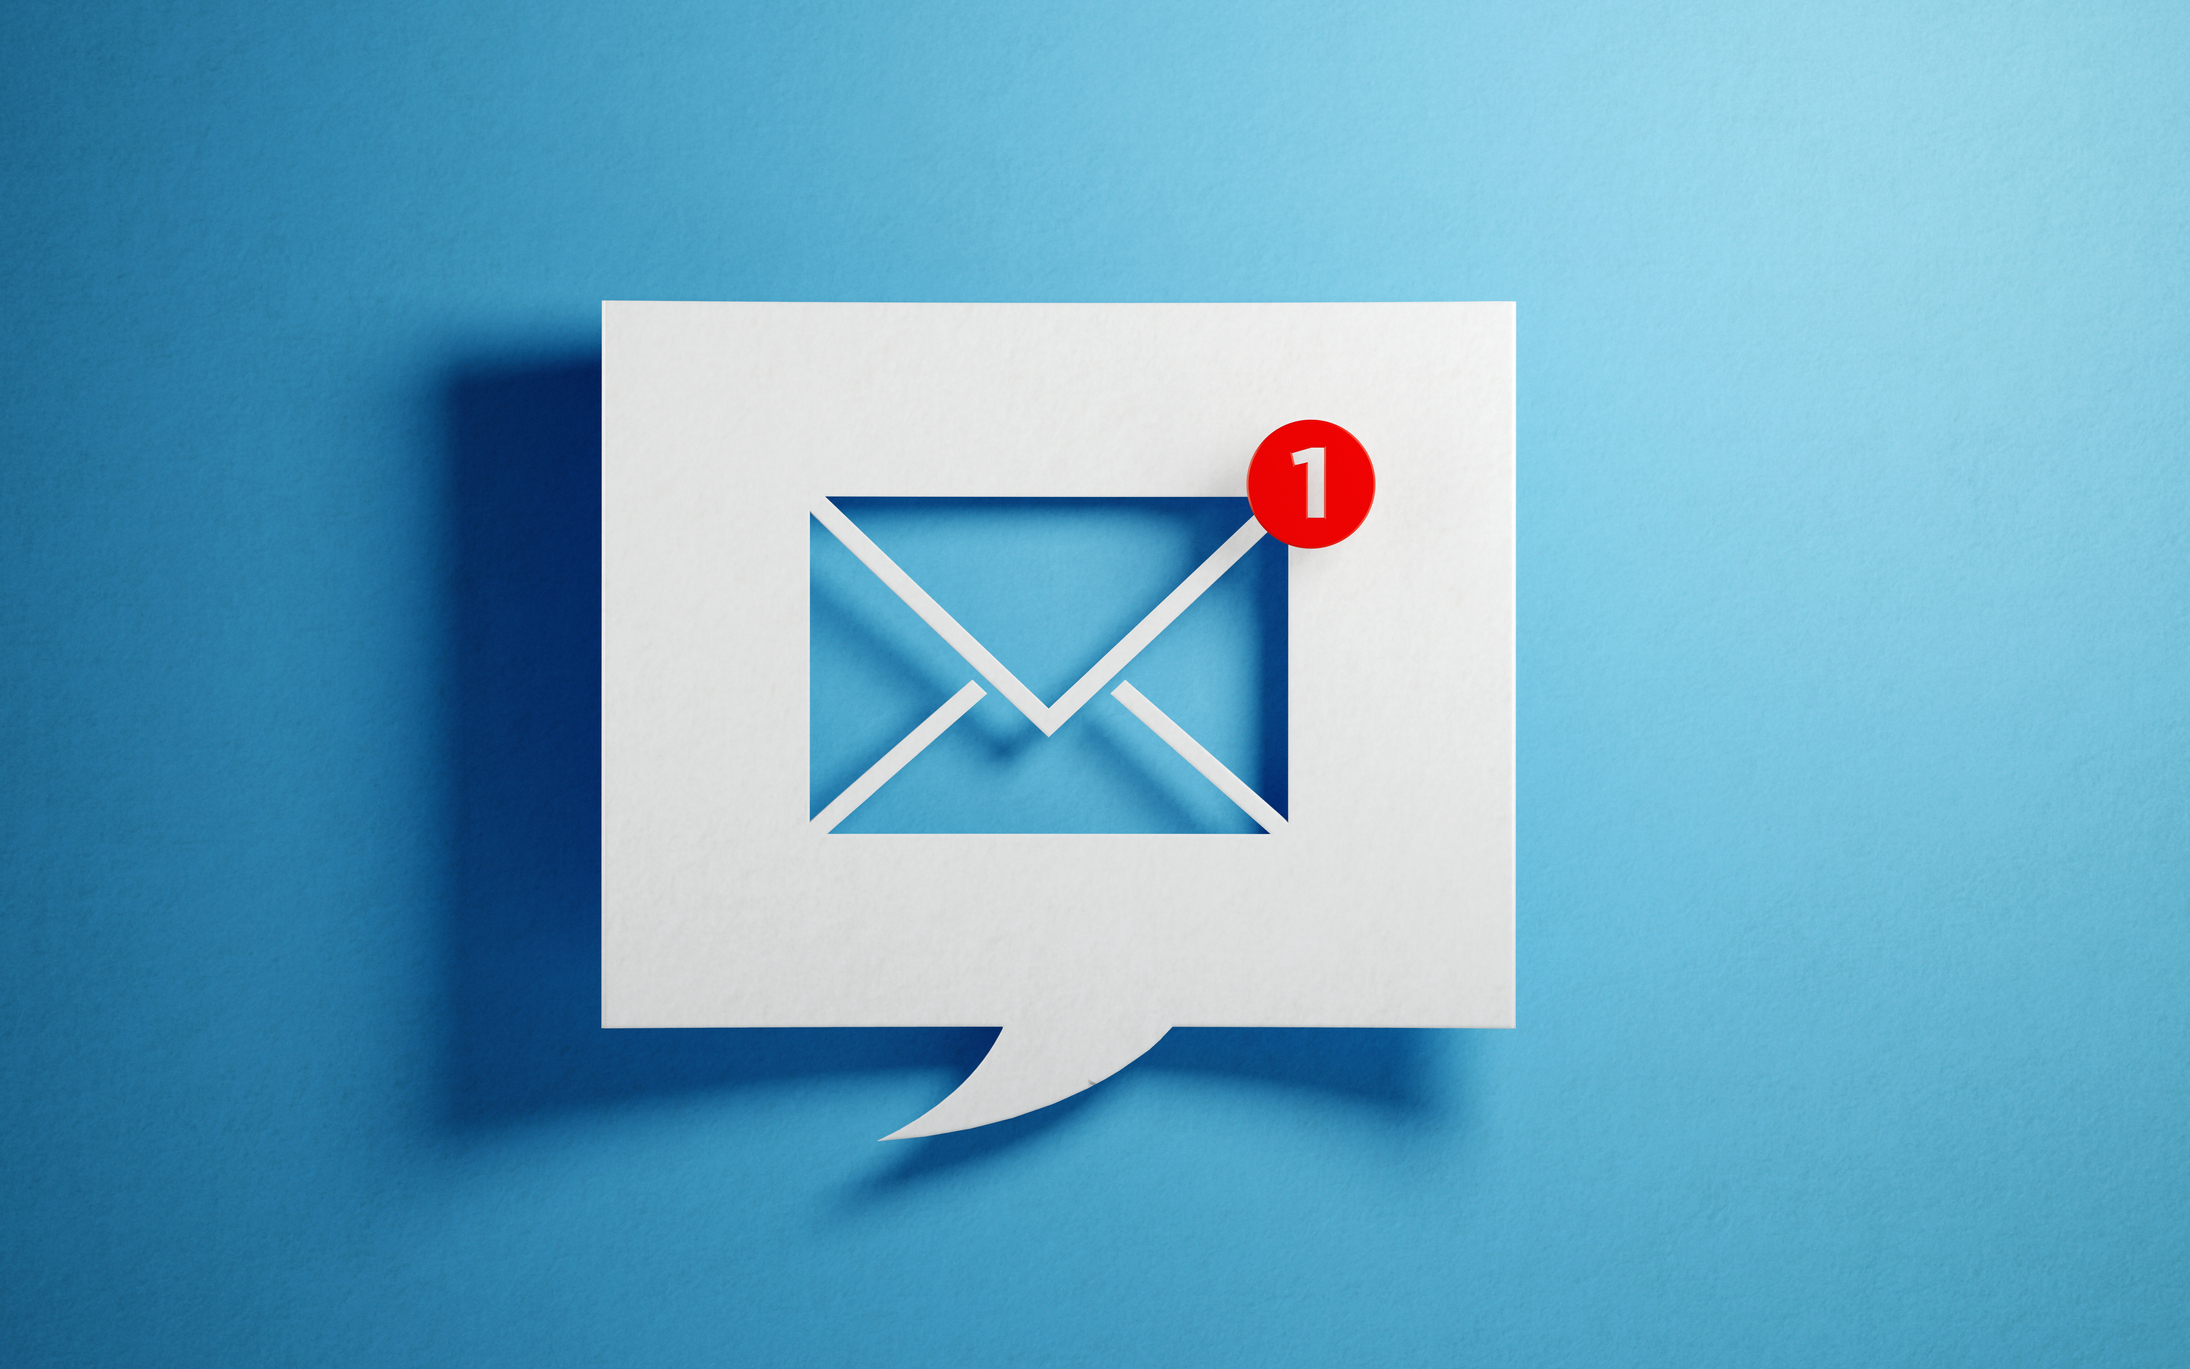 White-Chat-Bubble-With-Email-Symbol-On-Blue-Background